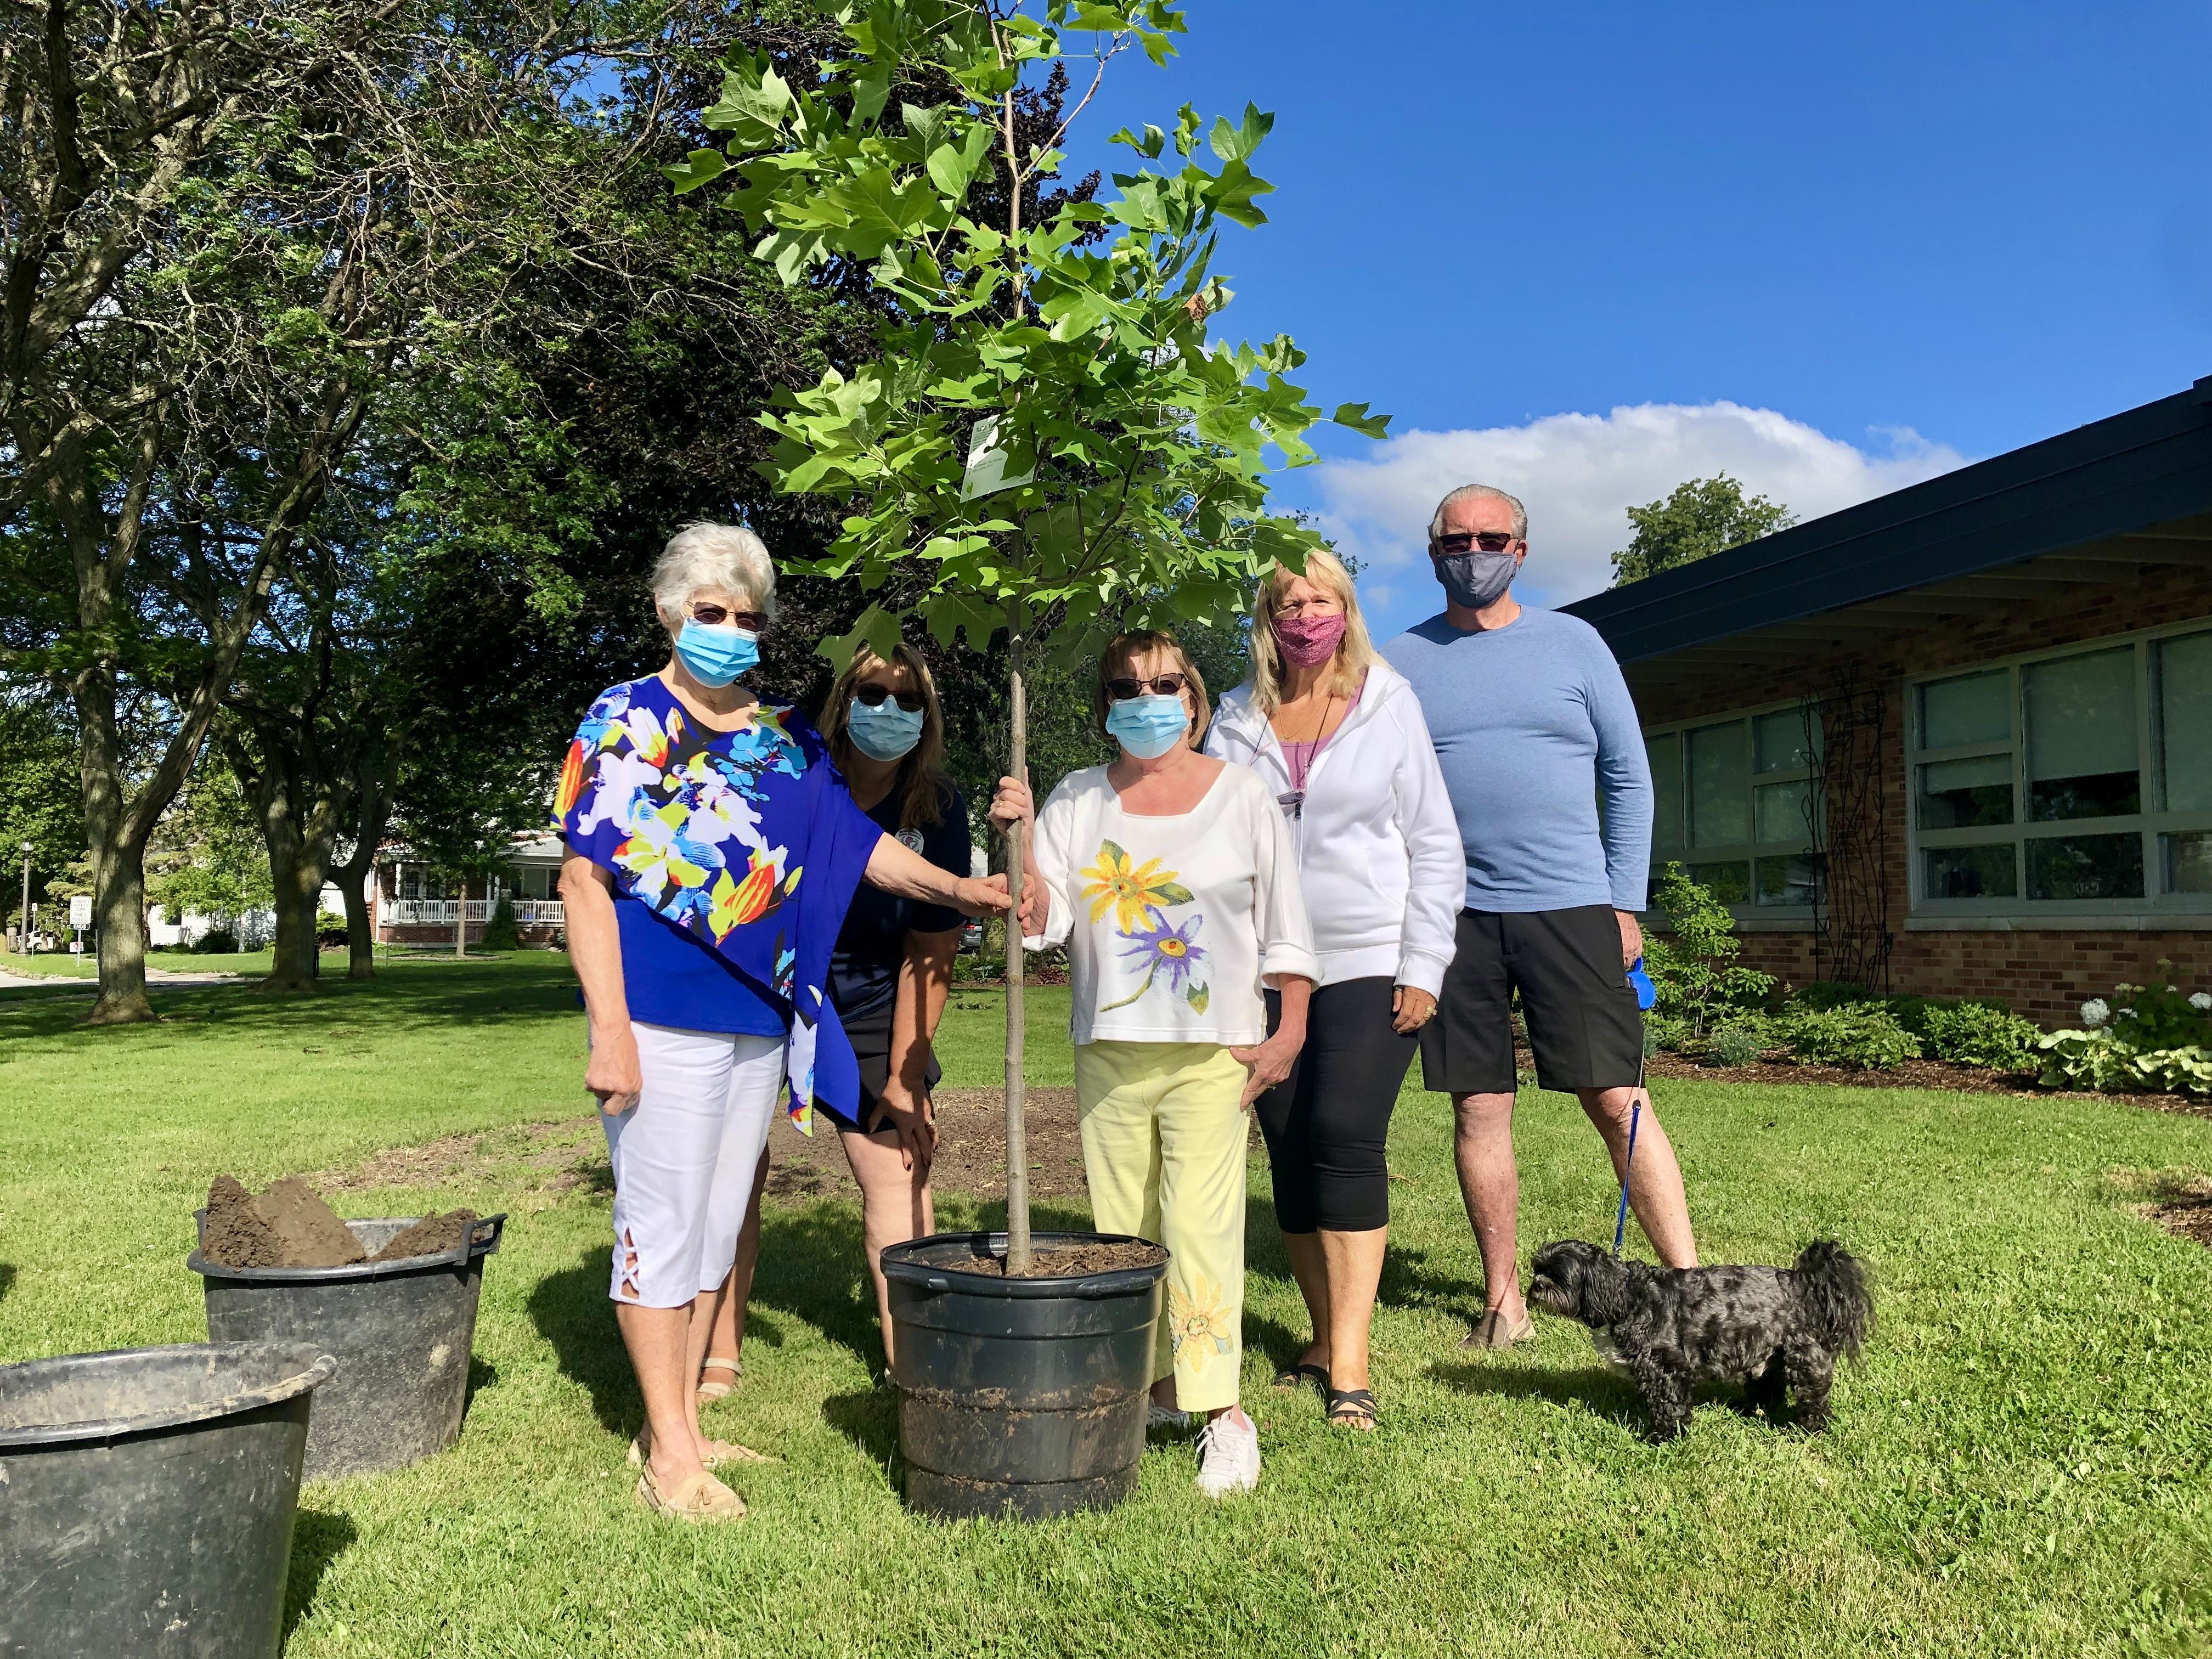 Members of the Amherstburg Fort Malden Horticultural Society plant a tulip tree at the hub